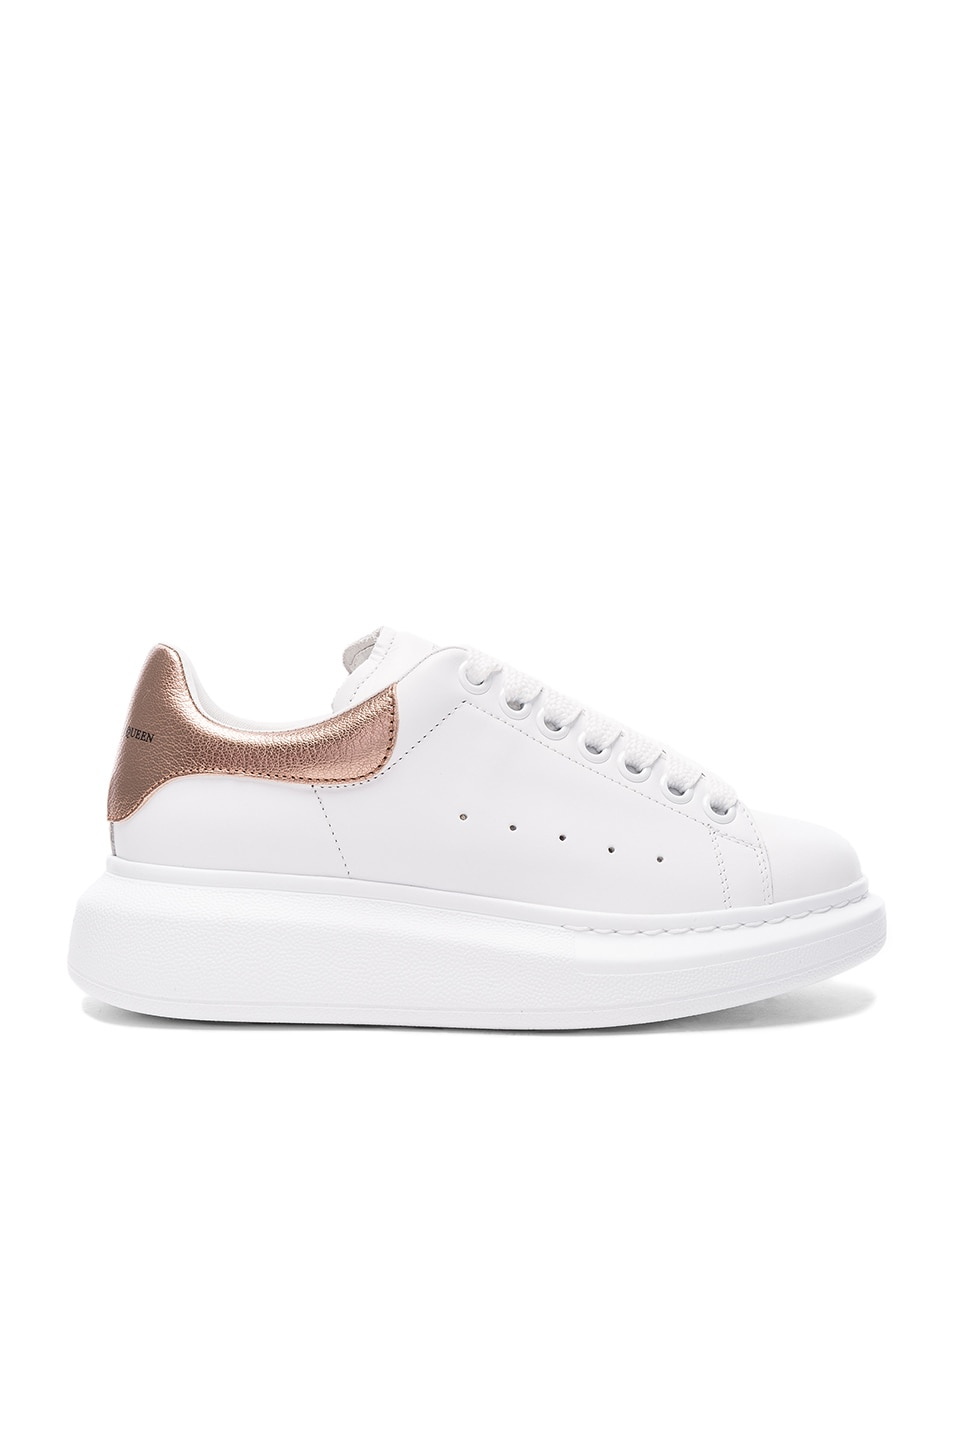 Image 1 of Alexander McQueen Leather Platform Sneakers in White & Rose Gold